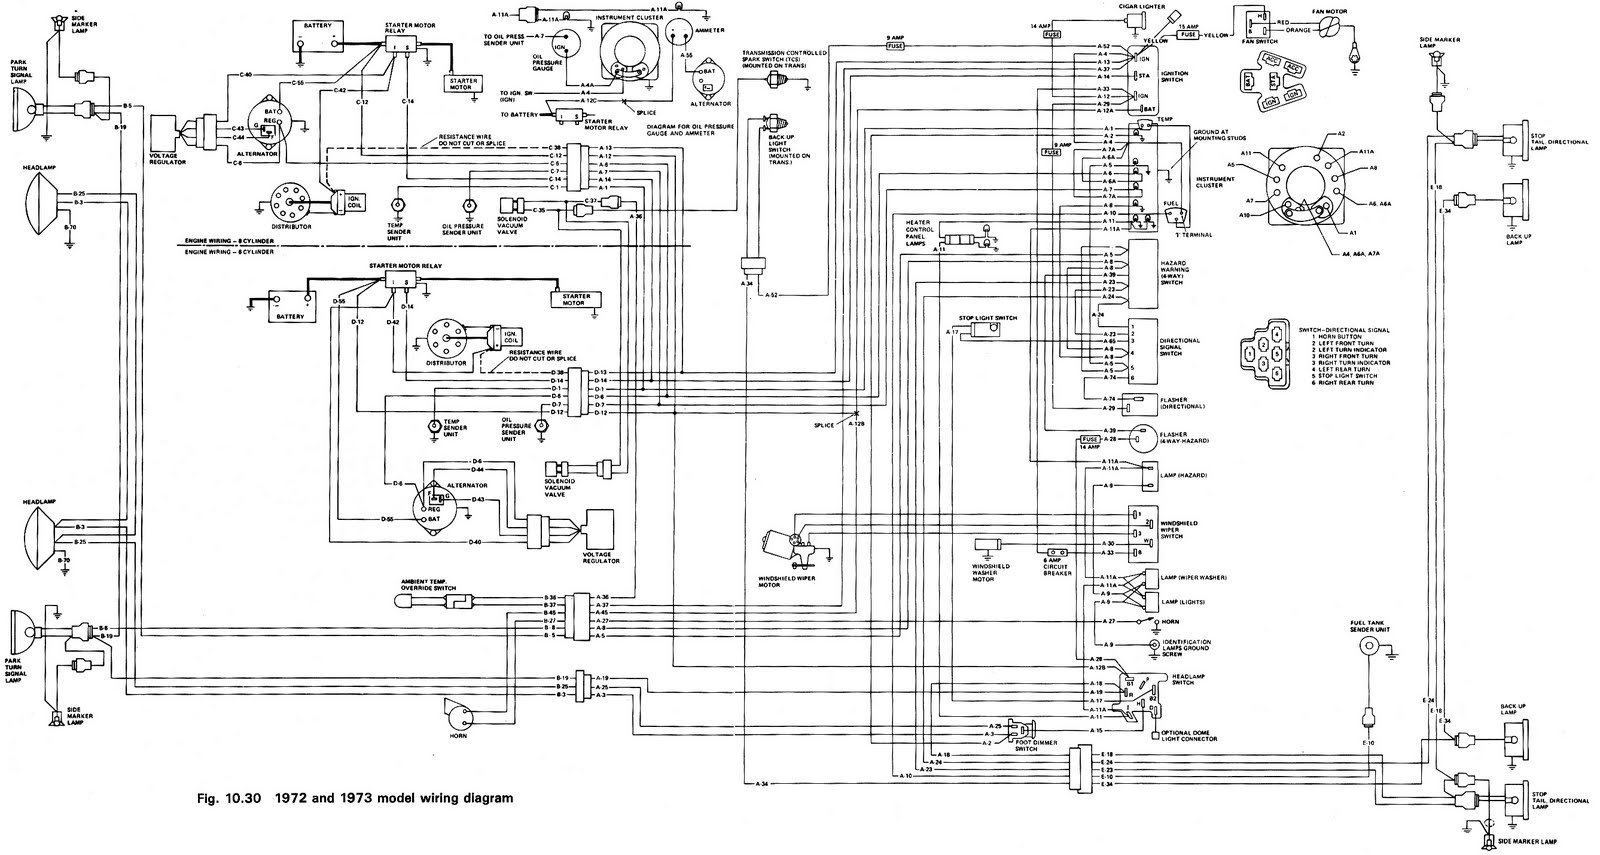 1977 Jeep Cj7 Fuel Gauge Wiring Diagram Free Picture Wiring Diagram